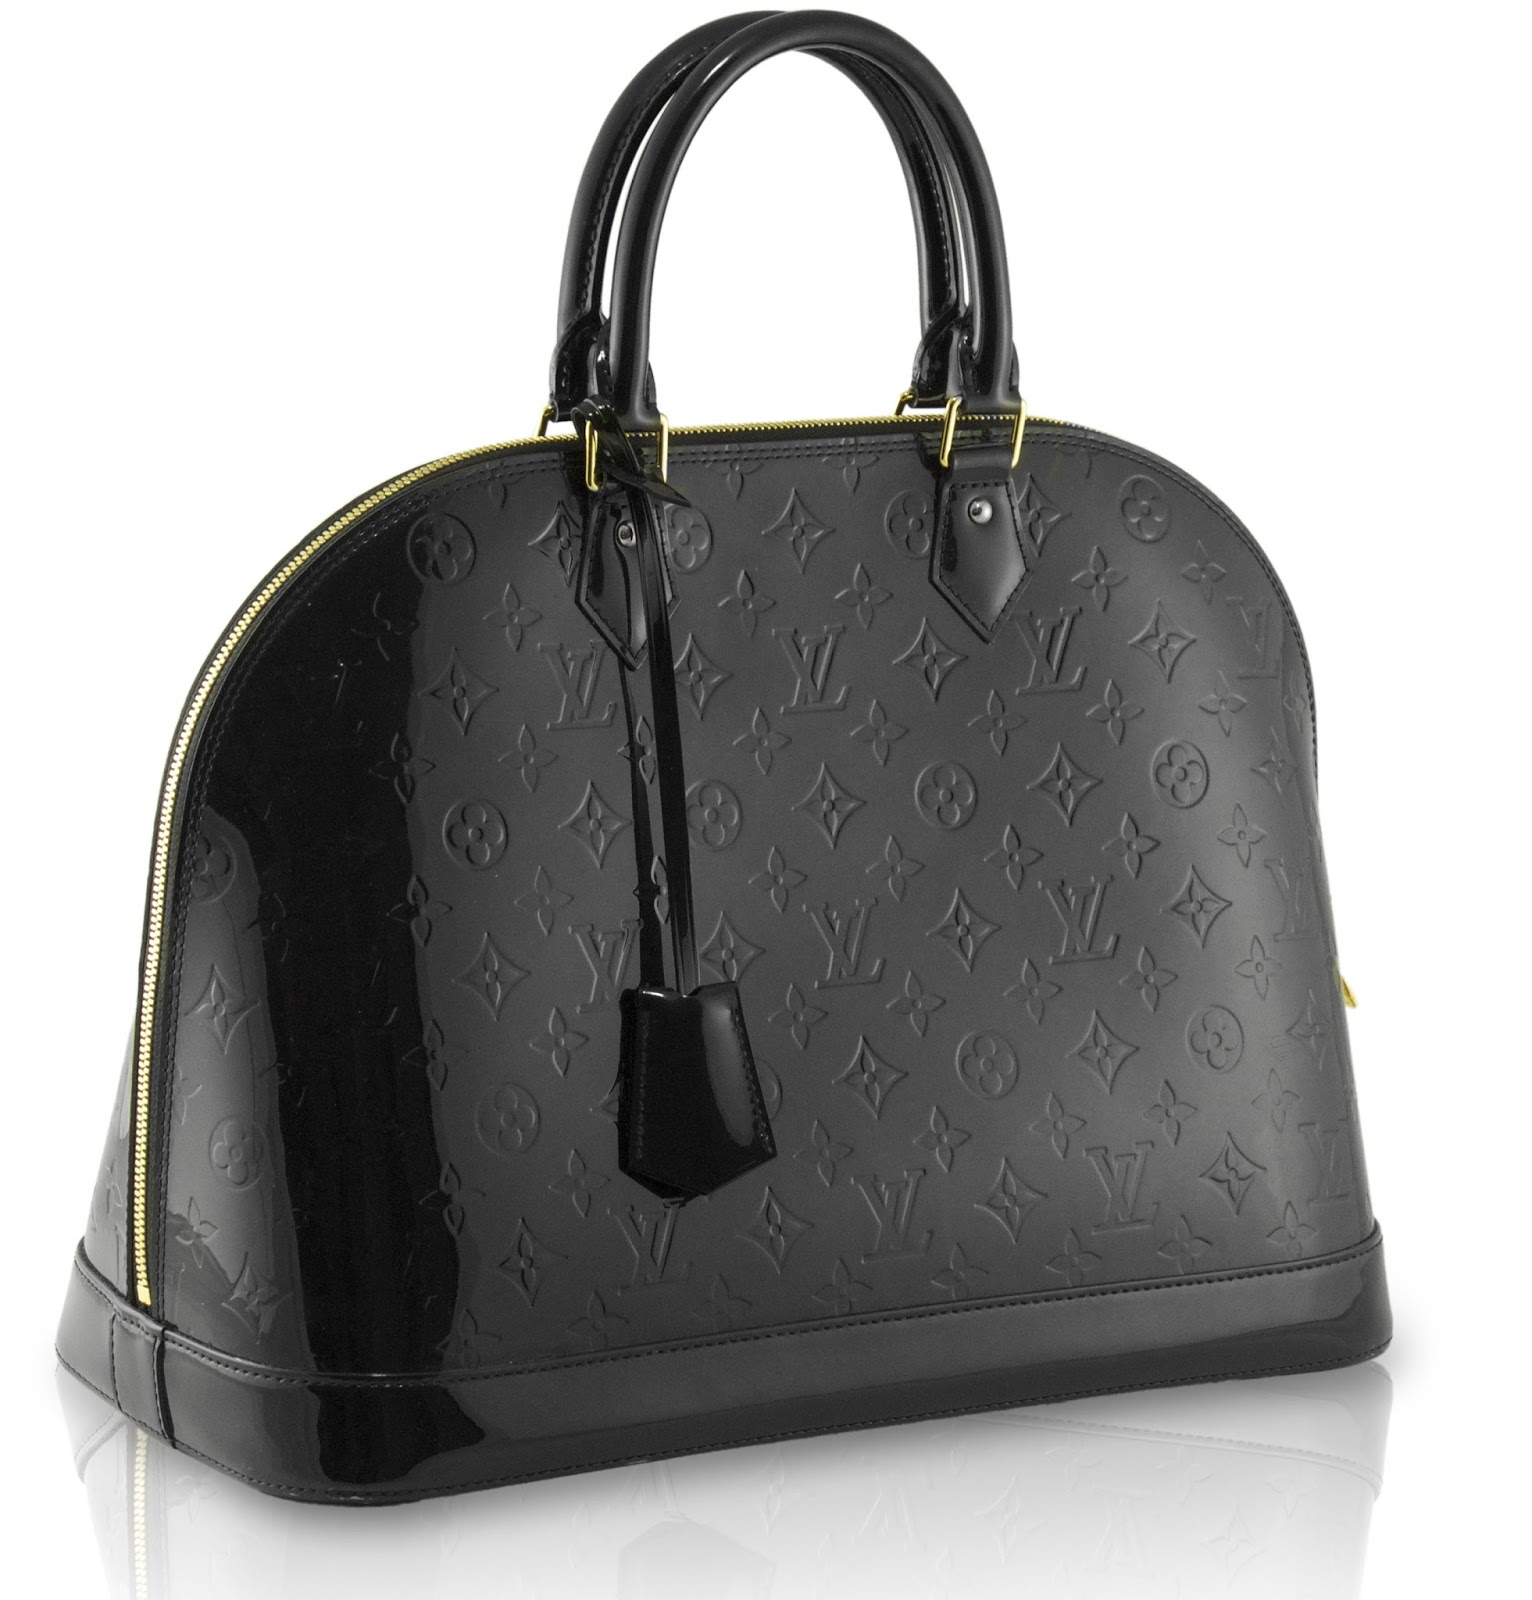 A Safe Place To Top Brands Of Handbags Supursestyle Is The Best Source Own Including Céline Chanel Gucci